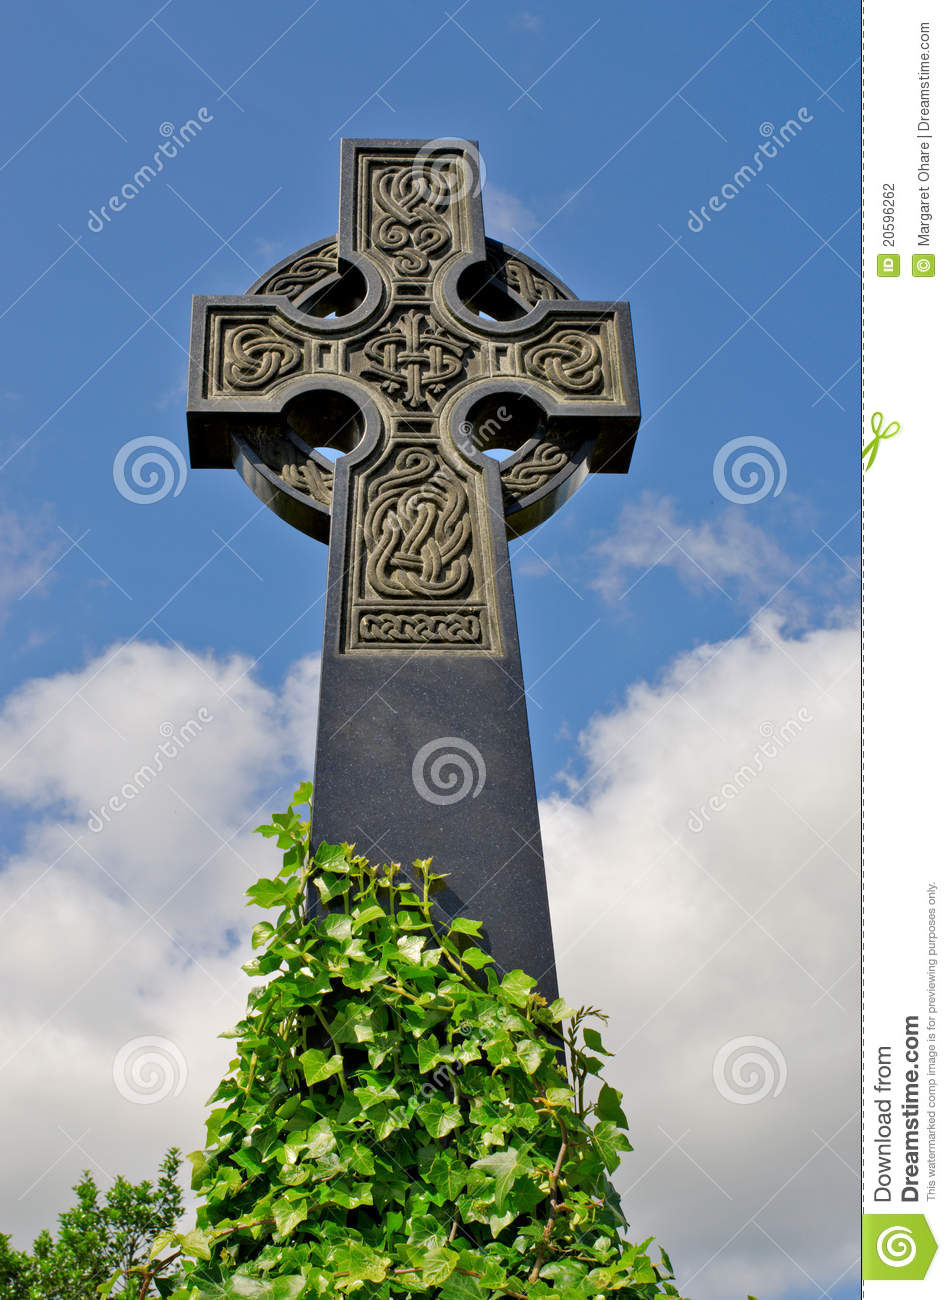 Irish Celtic Cross With Celtic Designs Stock Photo Image Of - Irish landmarks